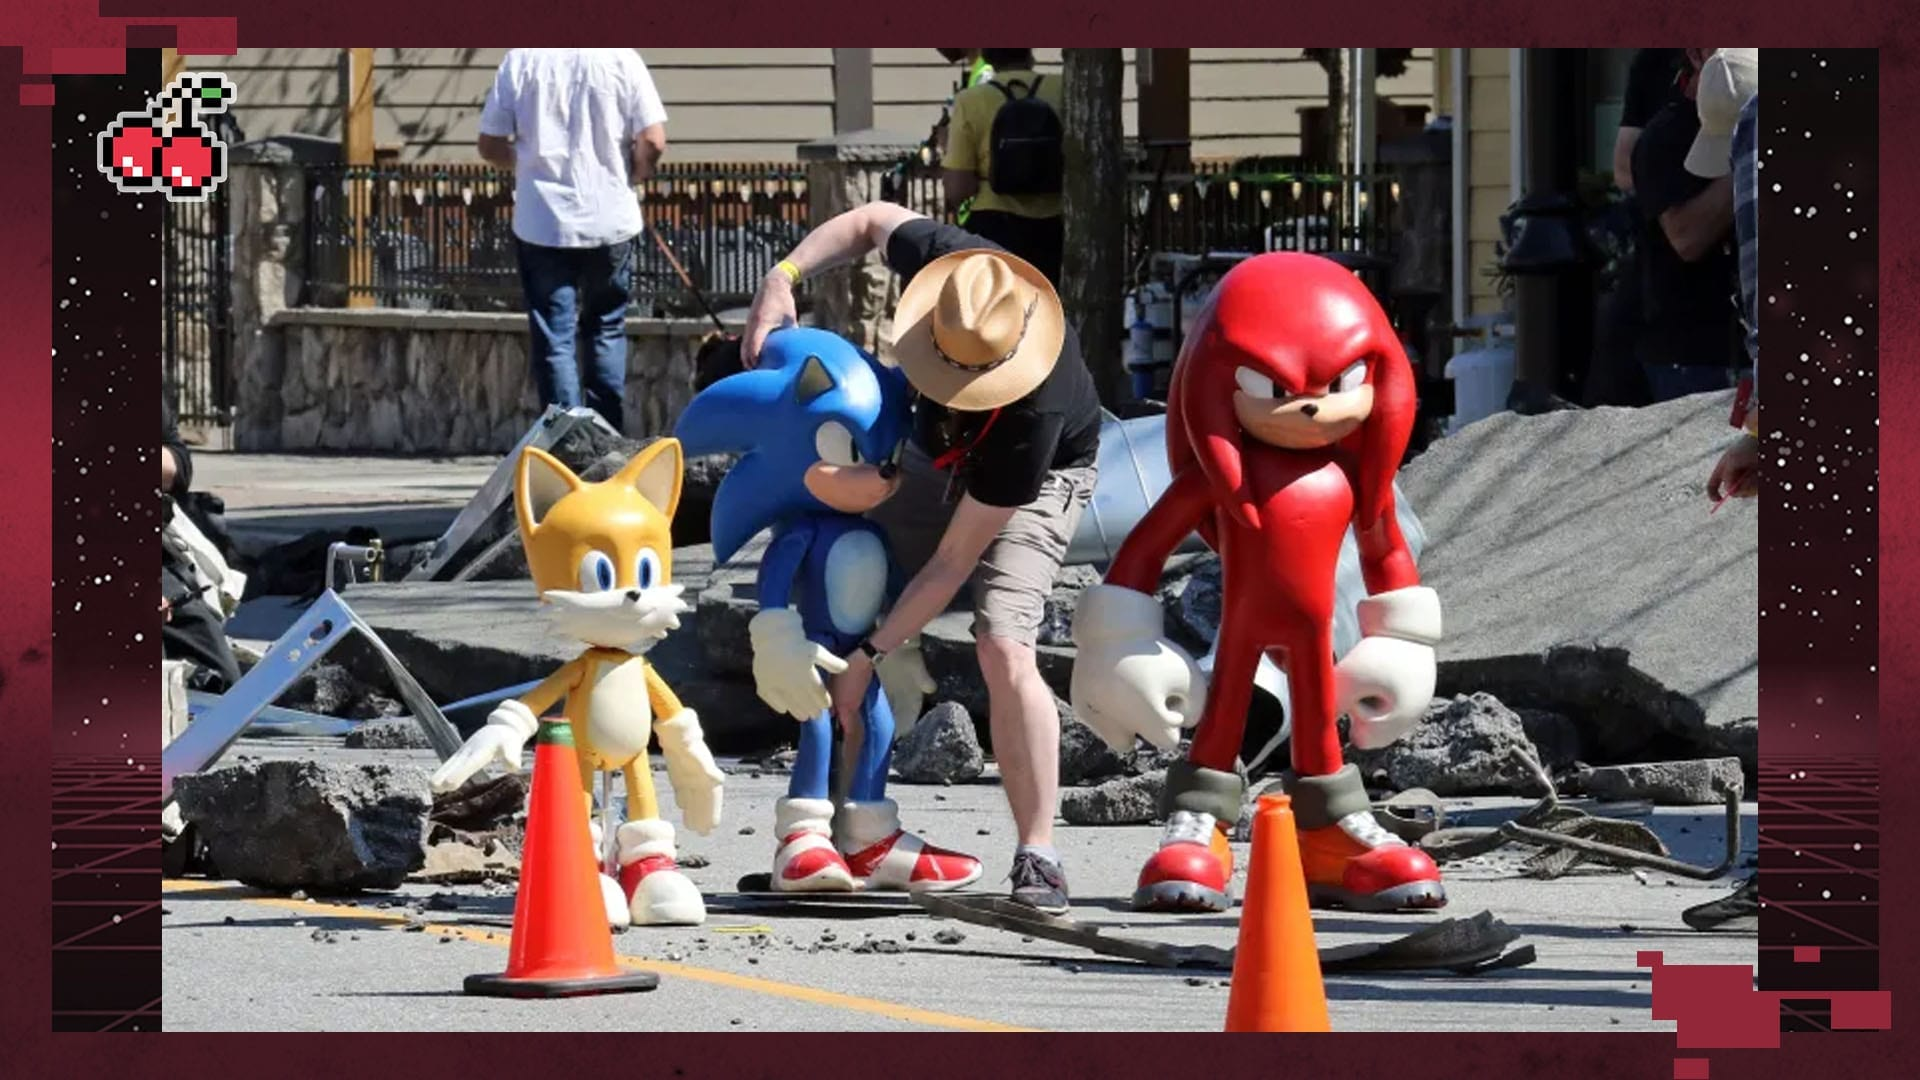 The Echidna Spotted During Sonic The Hedgehog 2 Filming